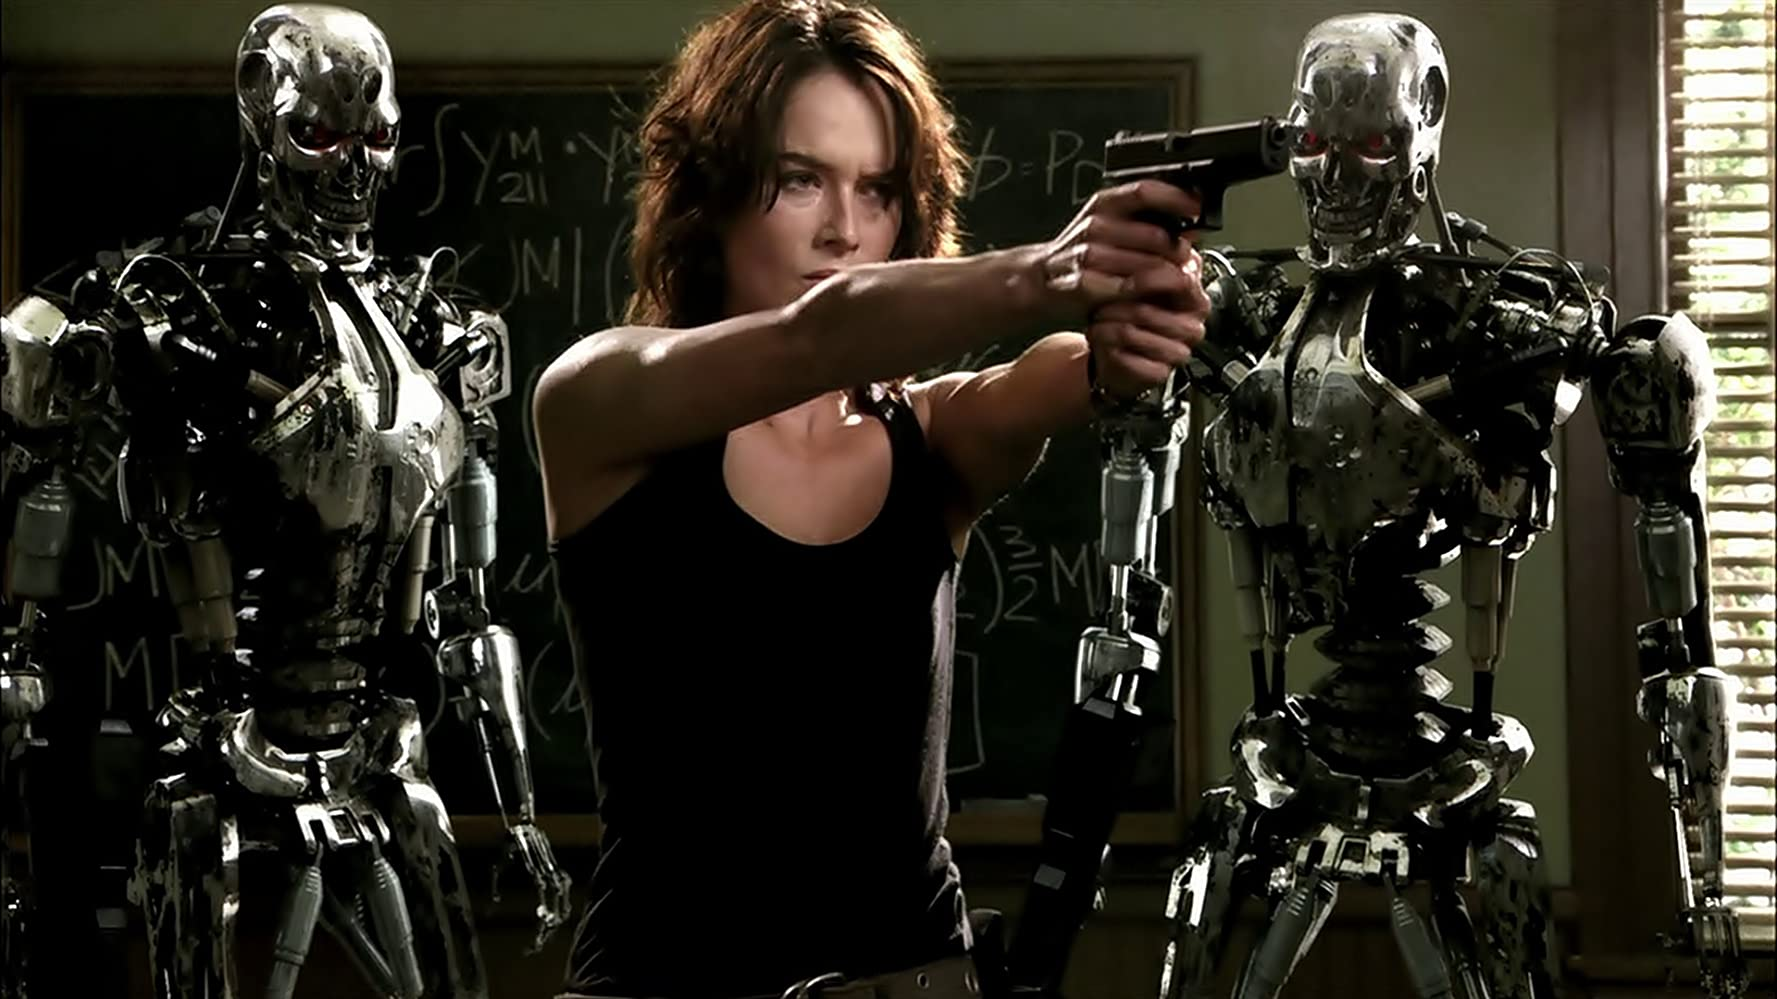 Lena Headey in Terminator: The Sarah Connor Chronicles (2008)